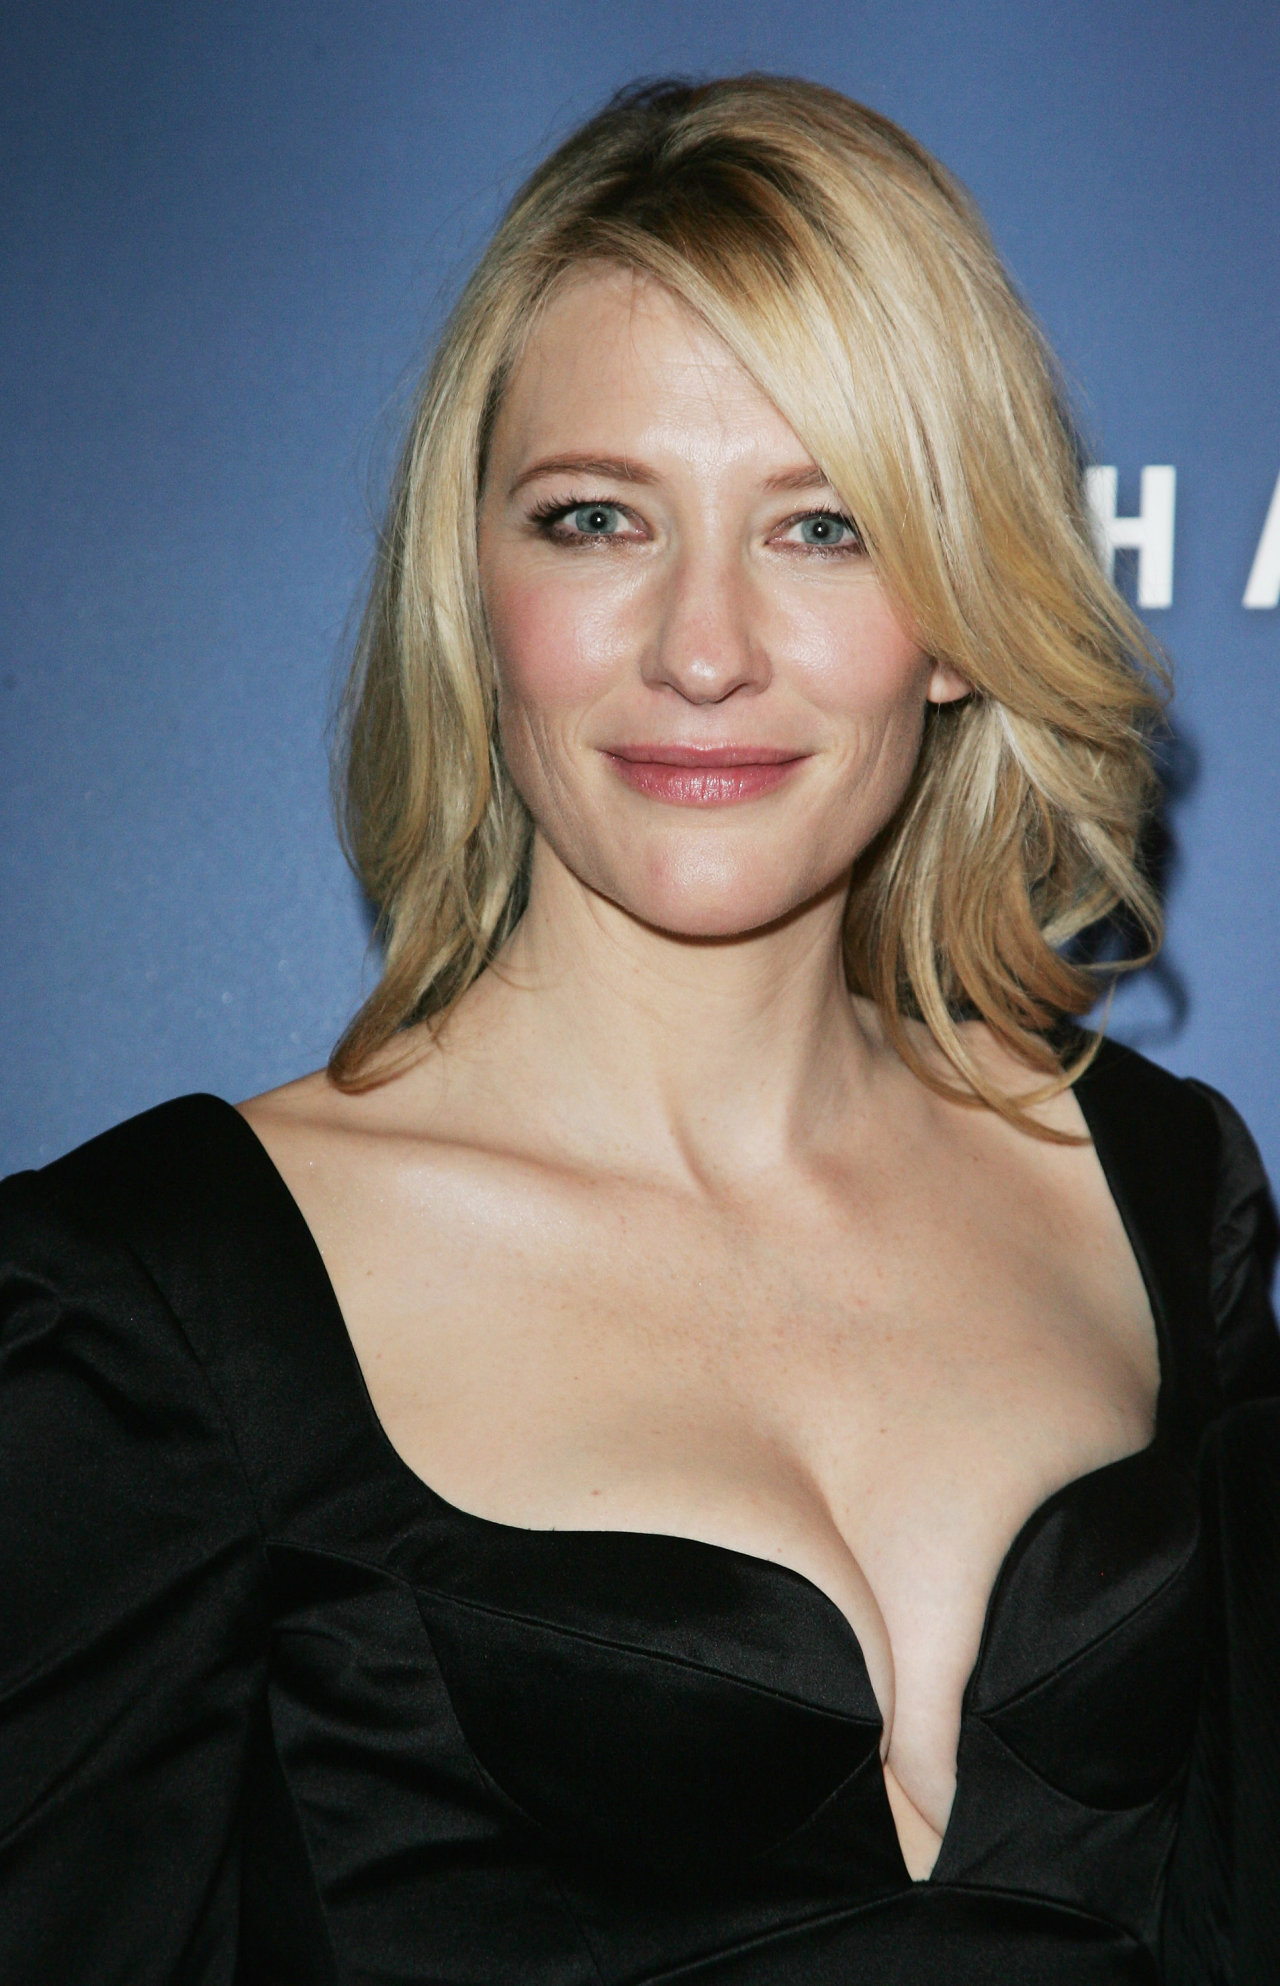 Cate Blanchett - Actress Wallpapers